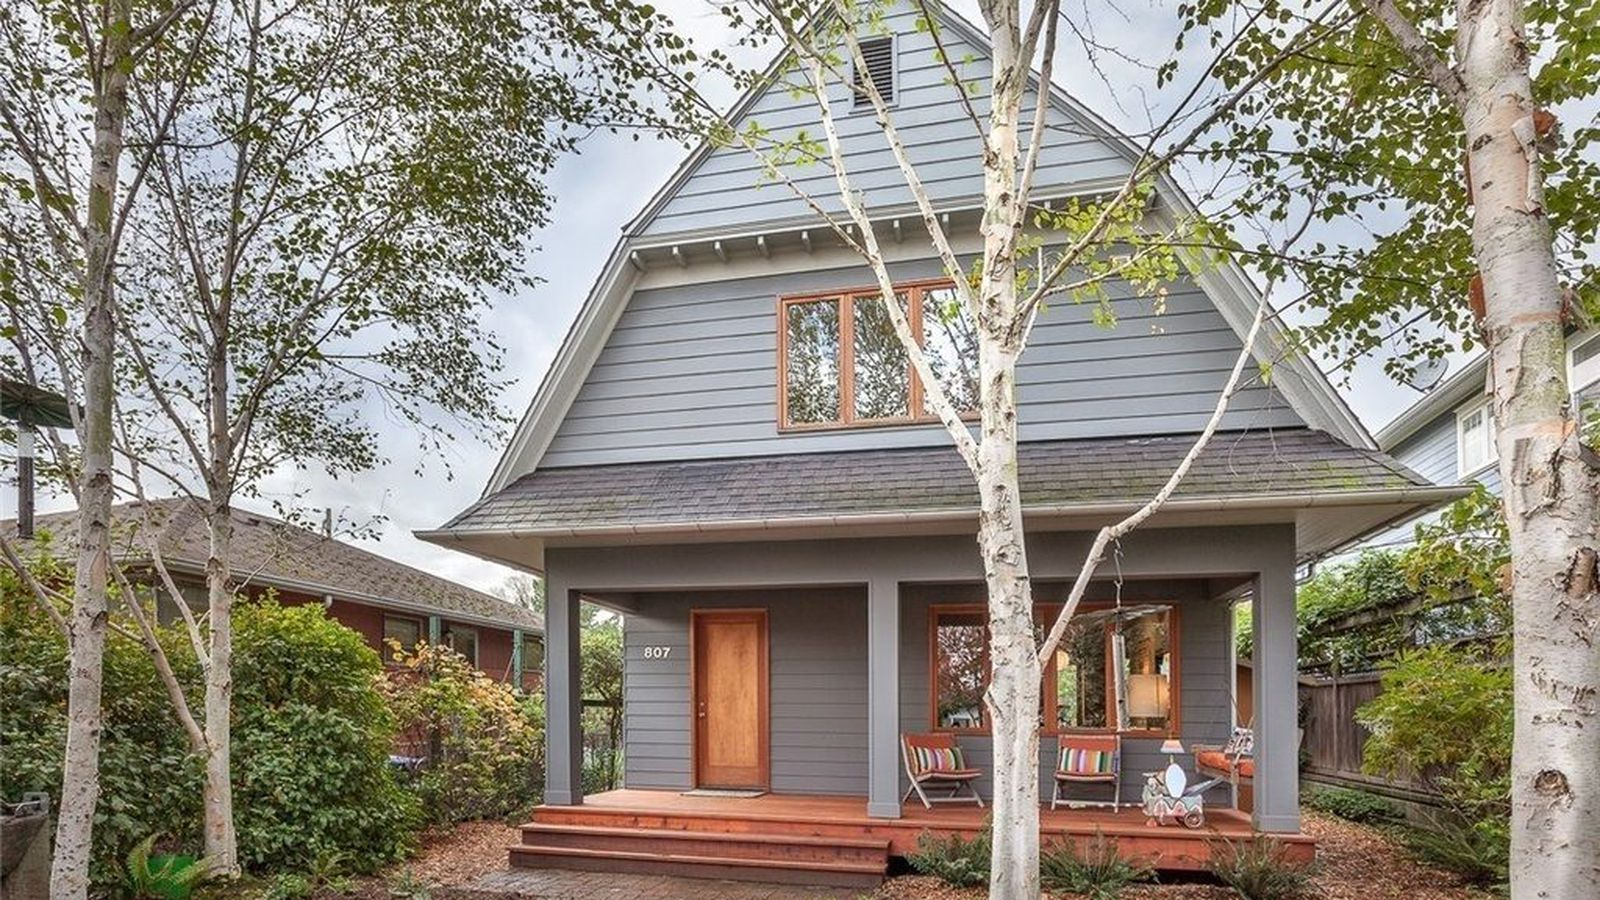 Modern dutch colonial urban retreat lists for 759k for Dutch colonial house for sale